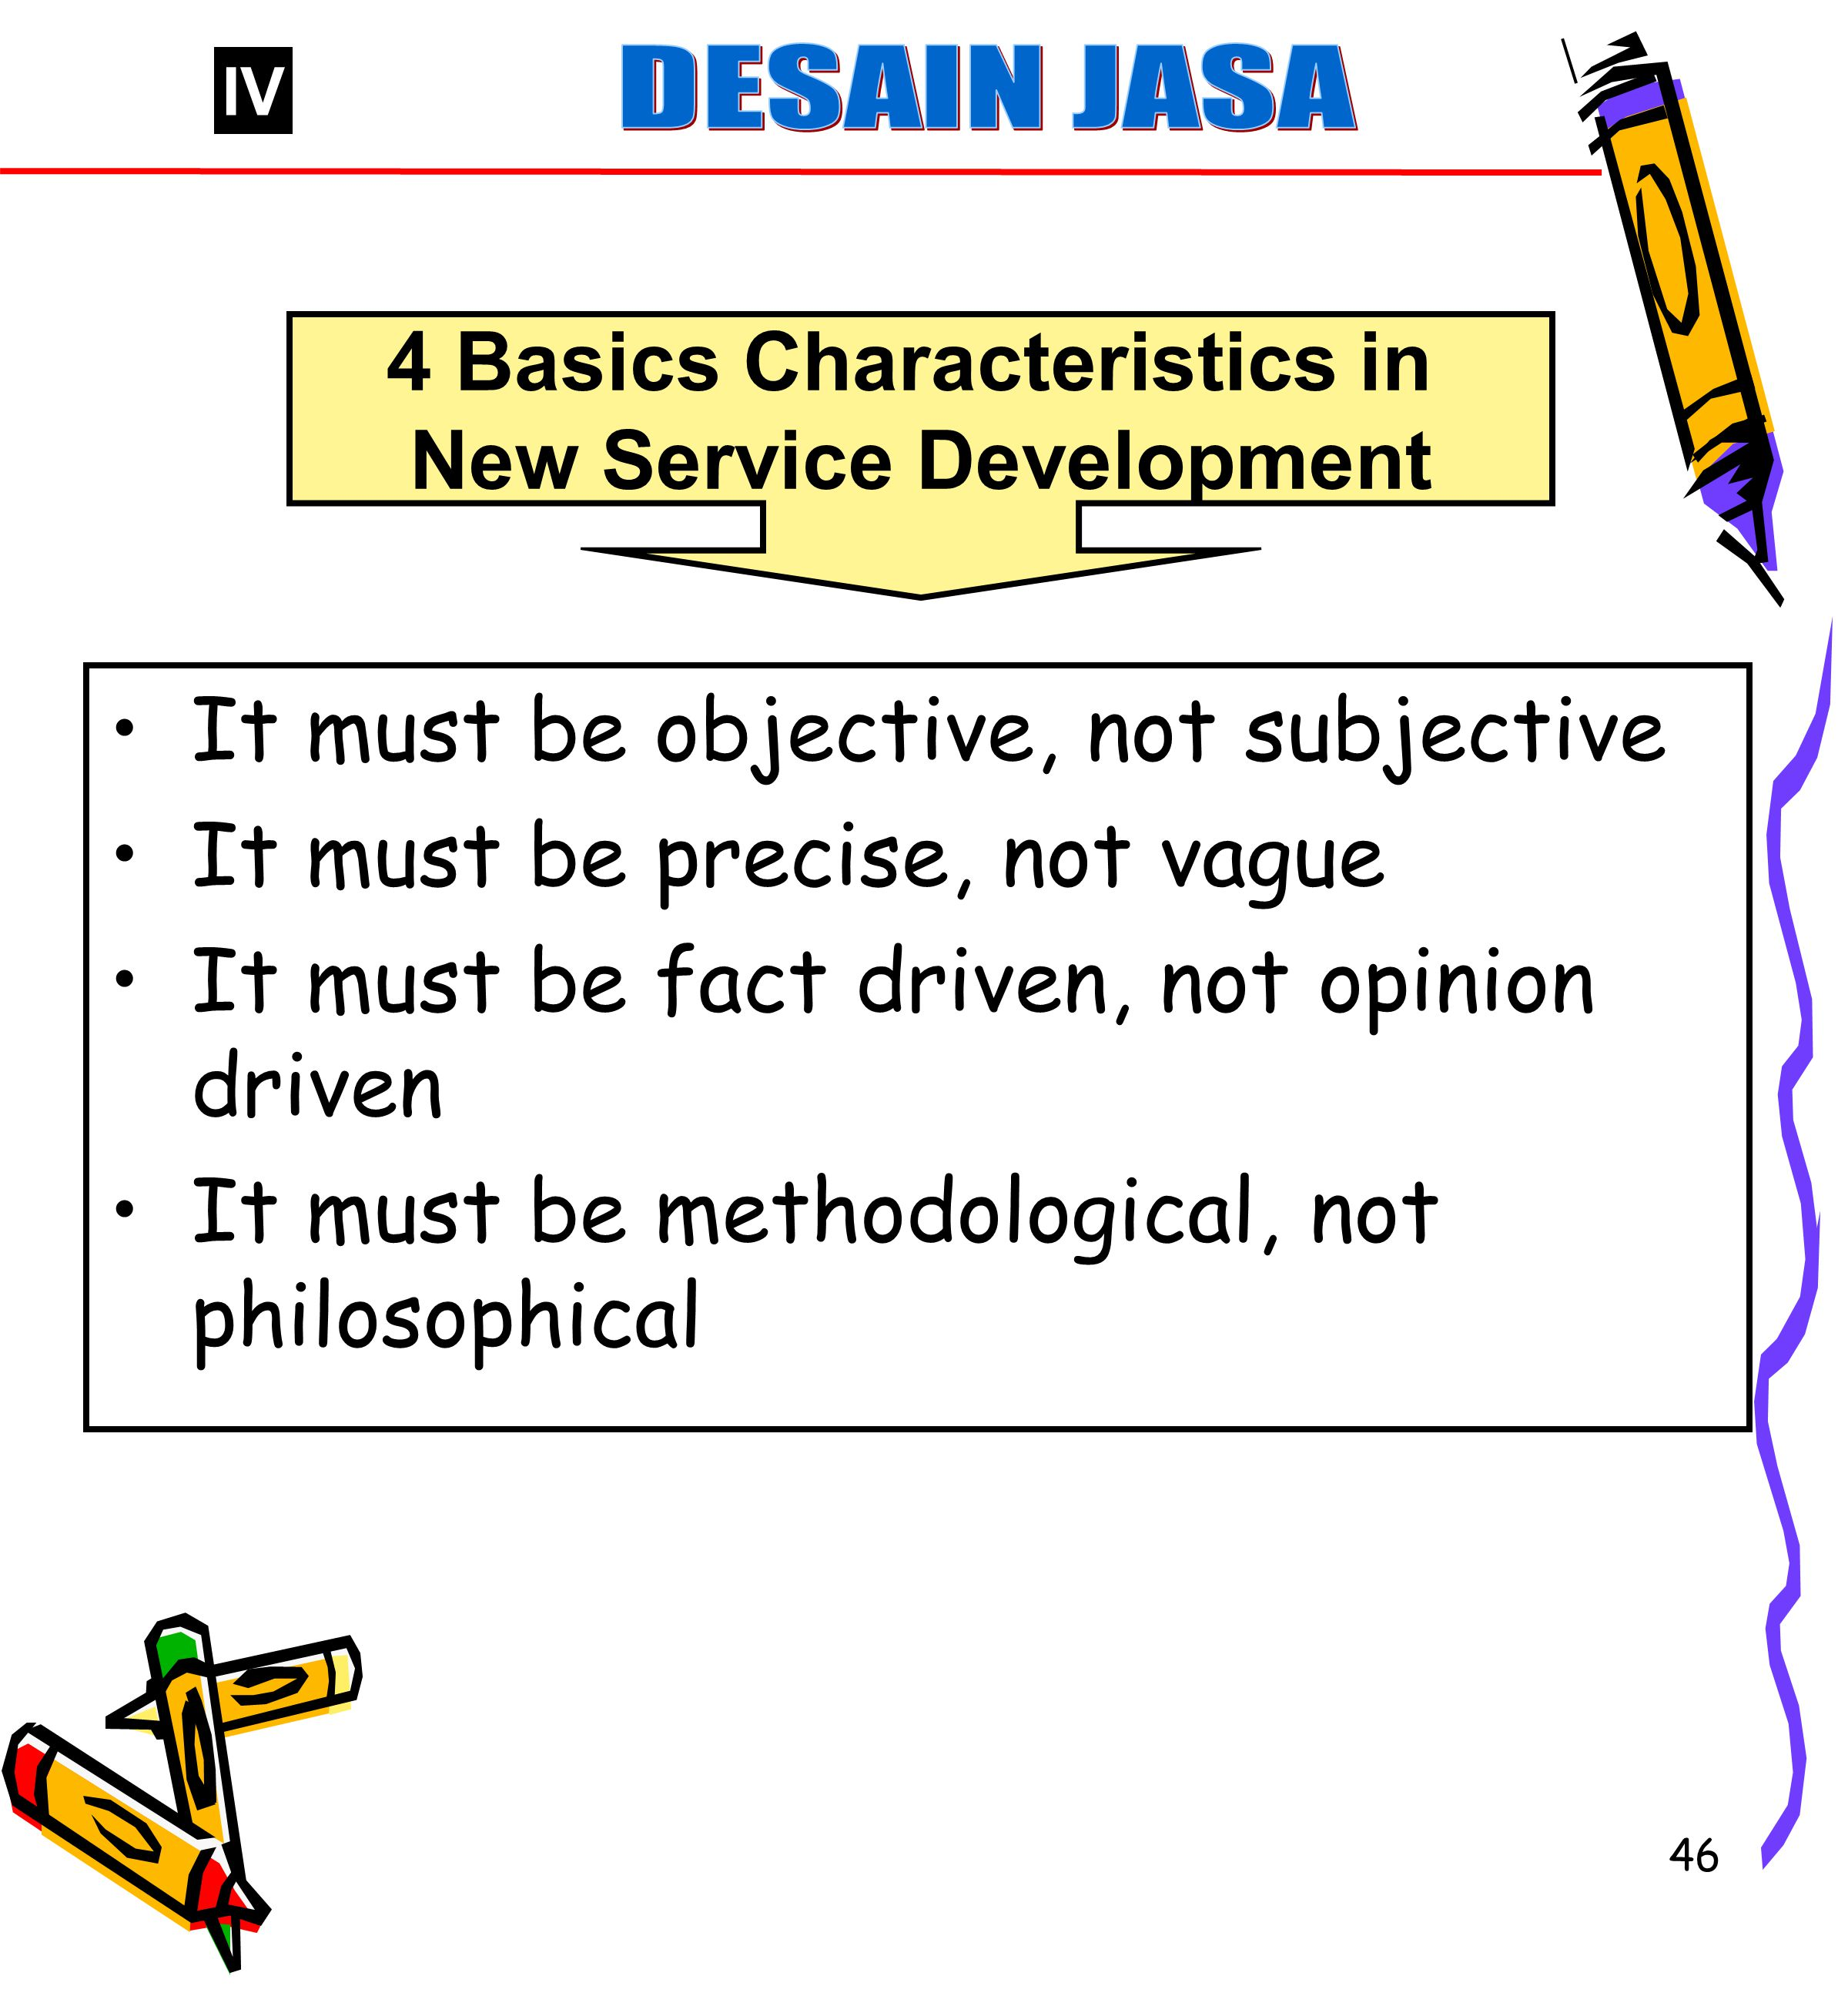 4 Basics Characteristics in New Service Development